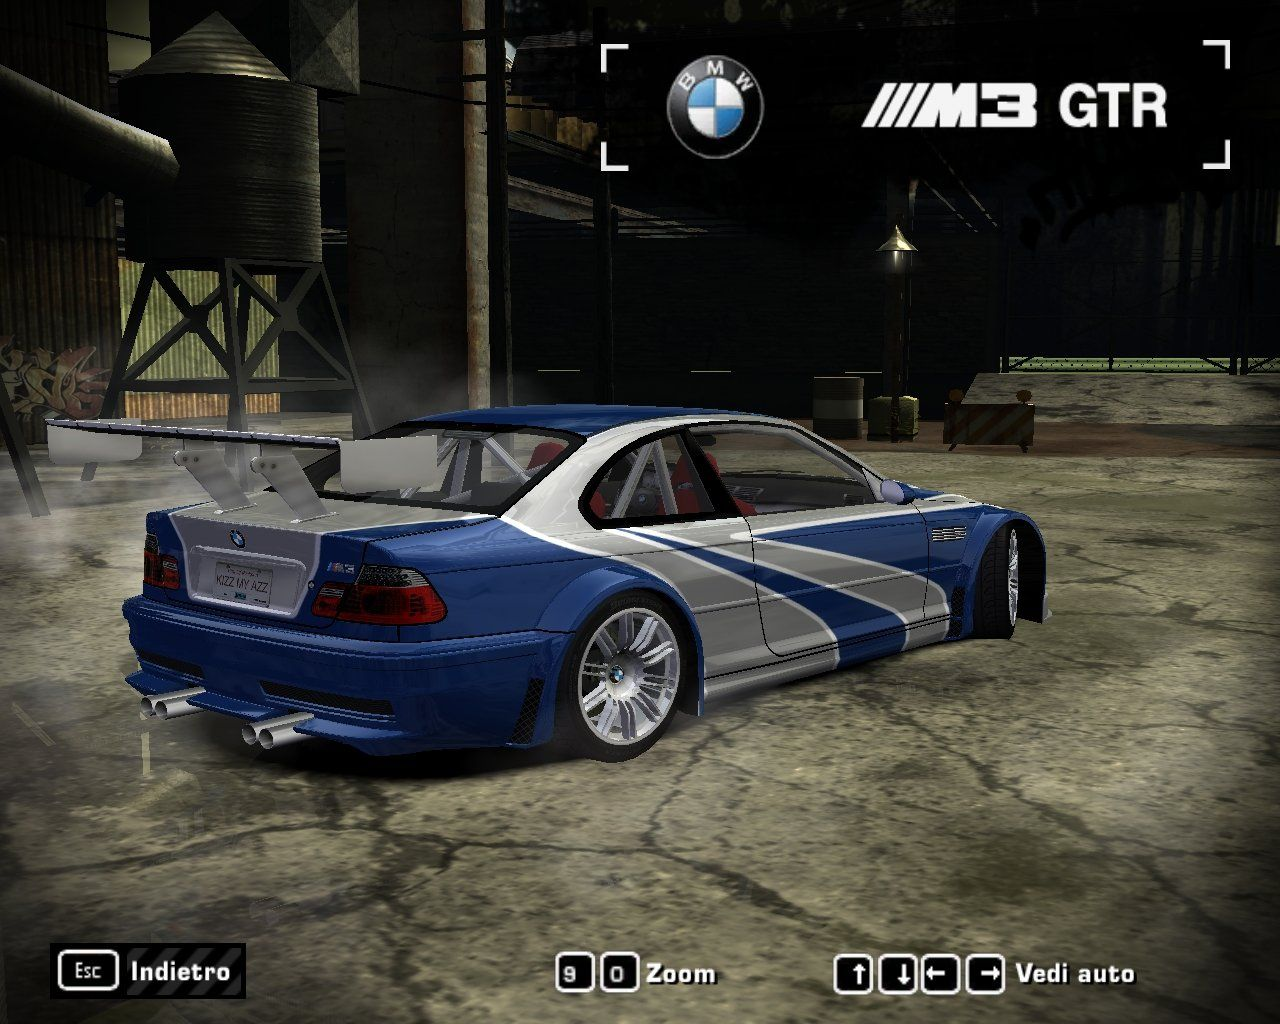 Image Bmw M3 Gtr Most Wanted Real On E92 Bmw M3 Most Wanted Jpg